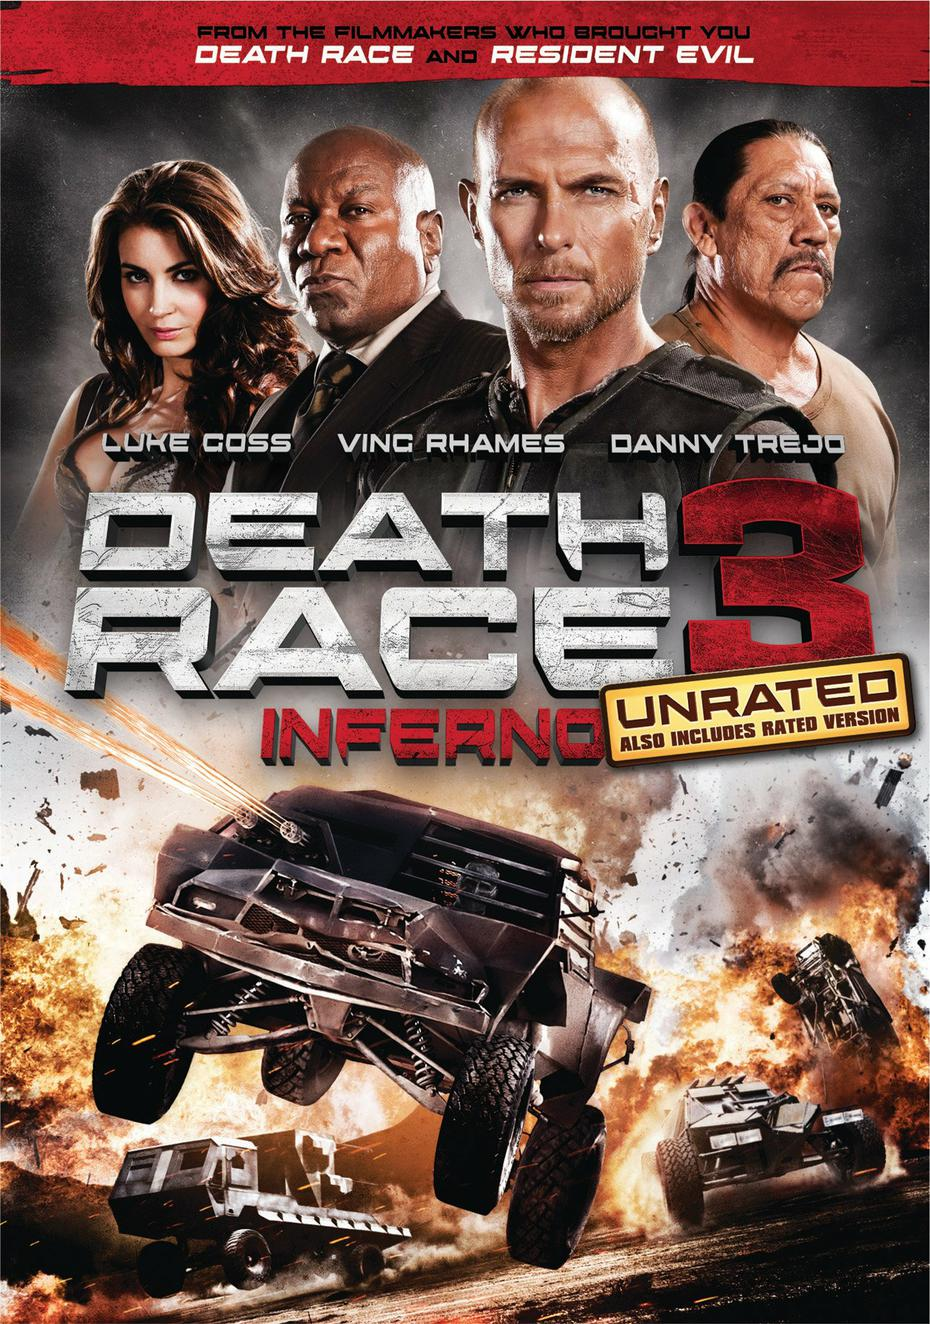 Death Race 3 Inferno (2013) Hindi Dubbed Watch Online In Full HD 1080p